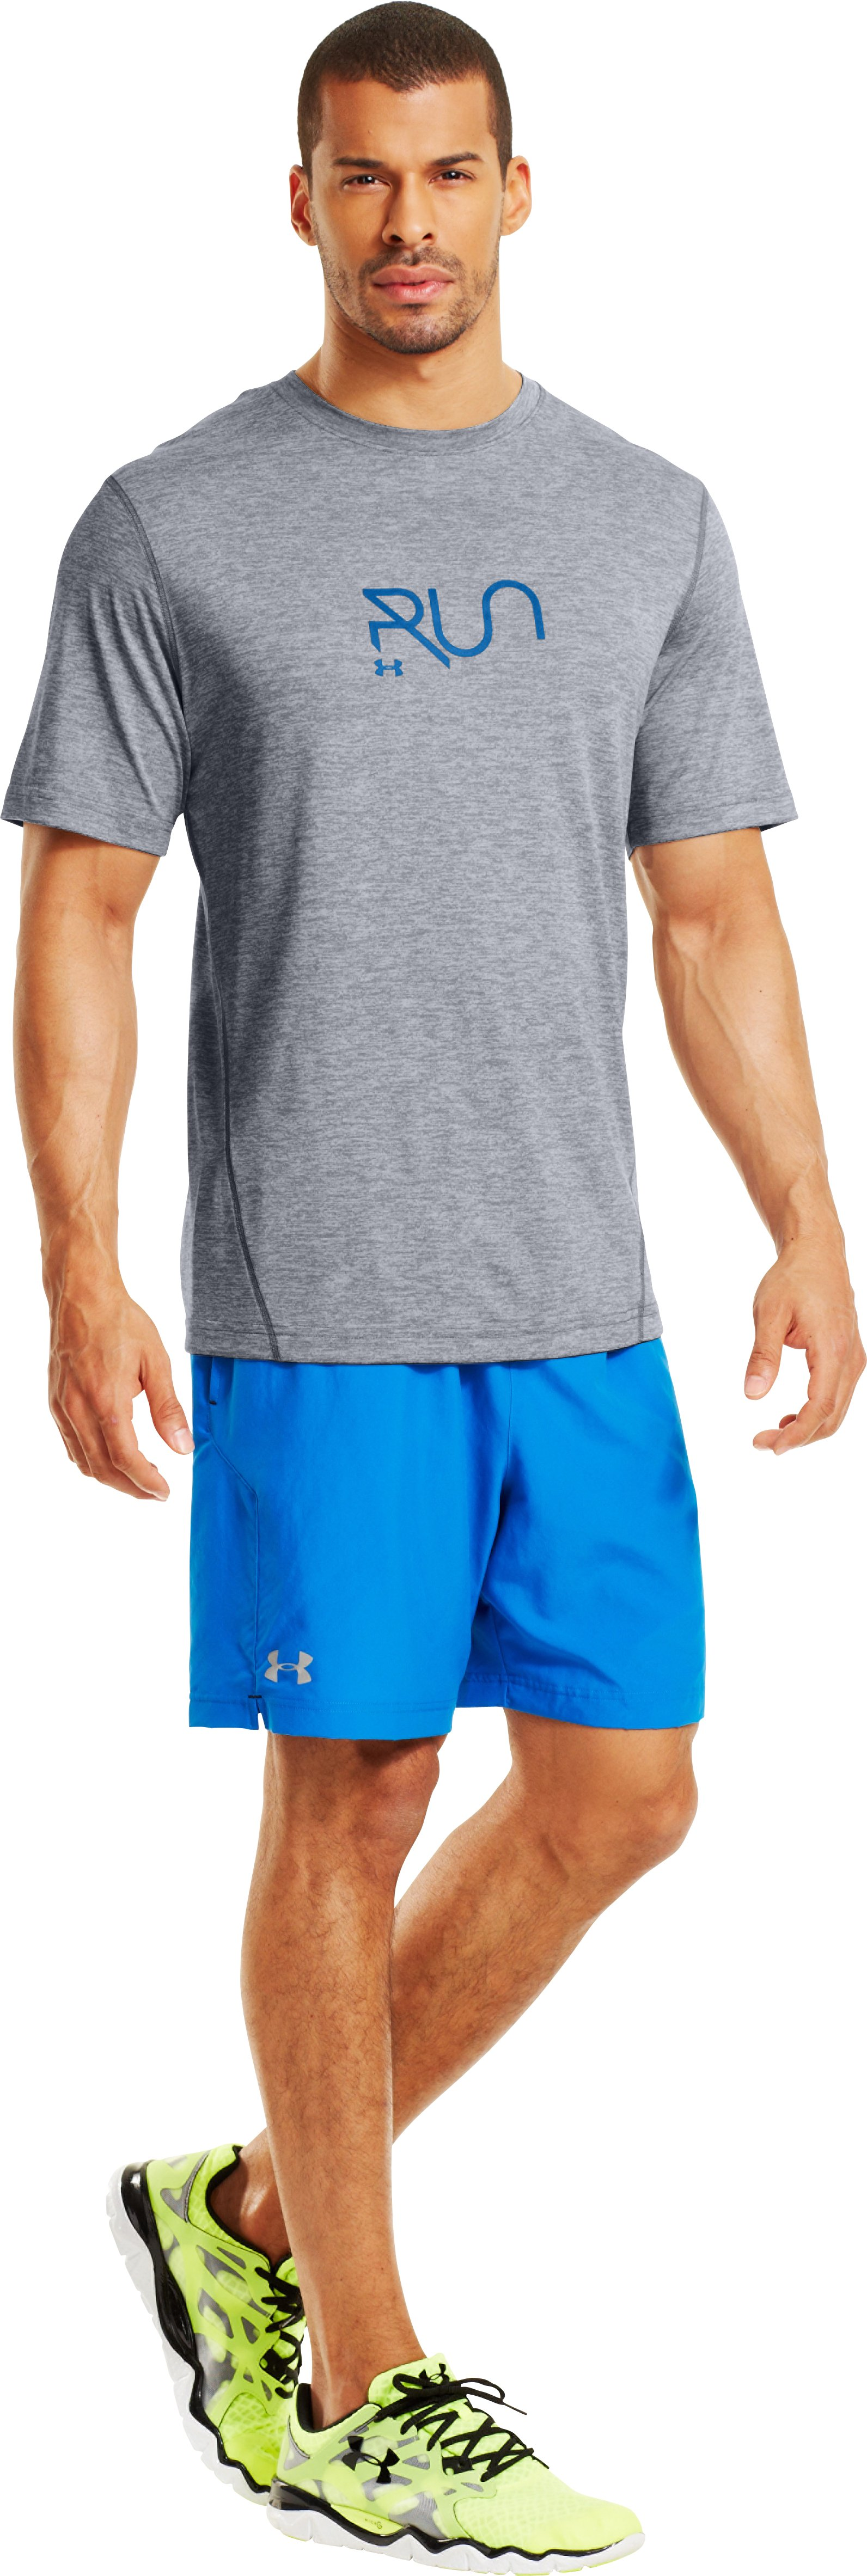 Men's UA Illegal Turn T-Shirt, Steel